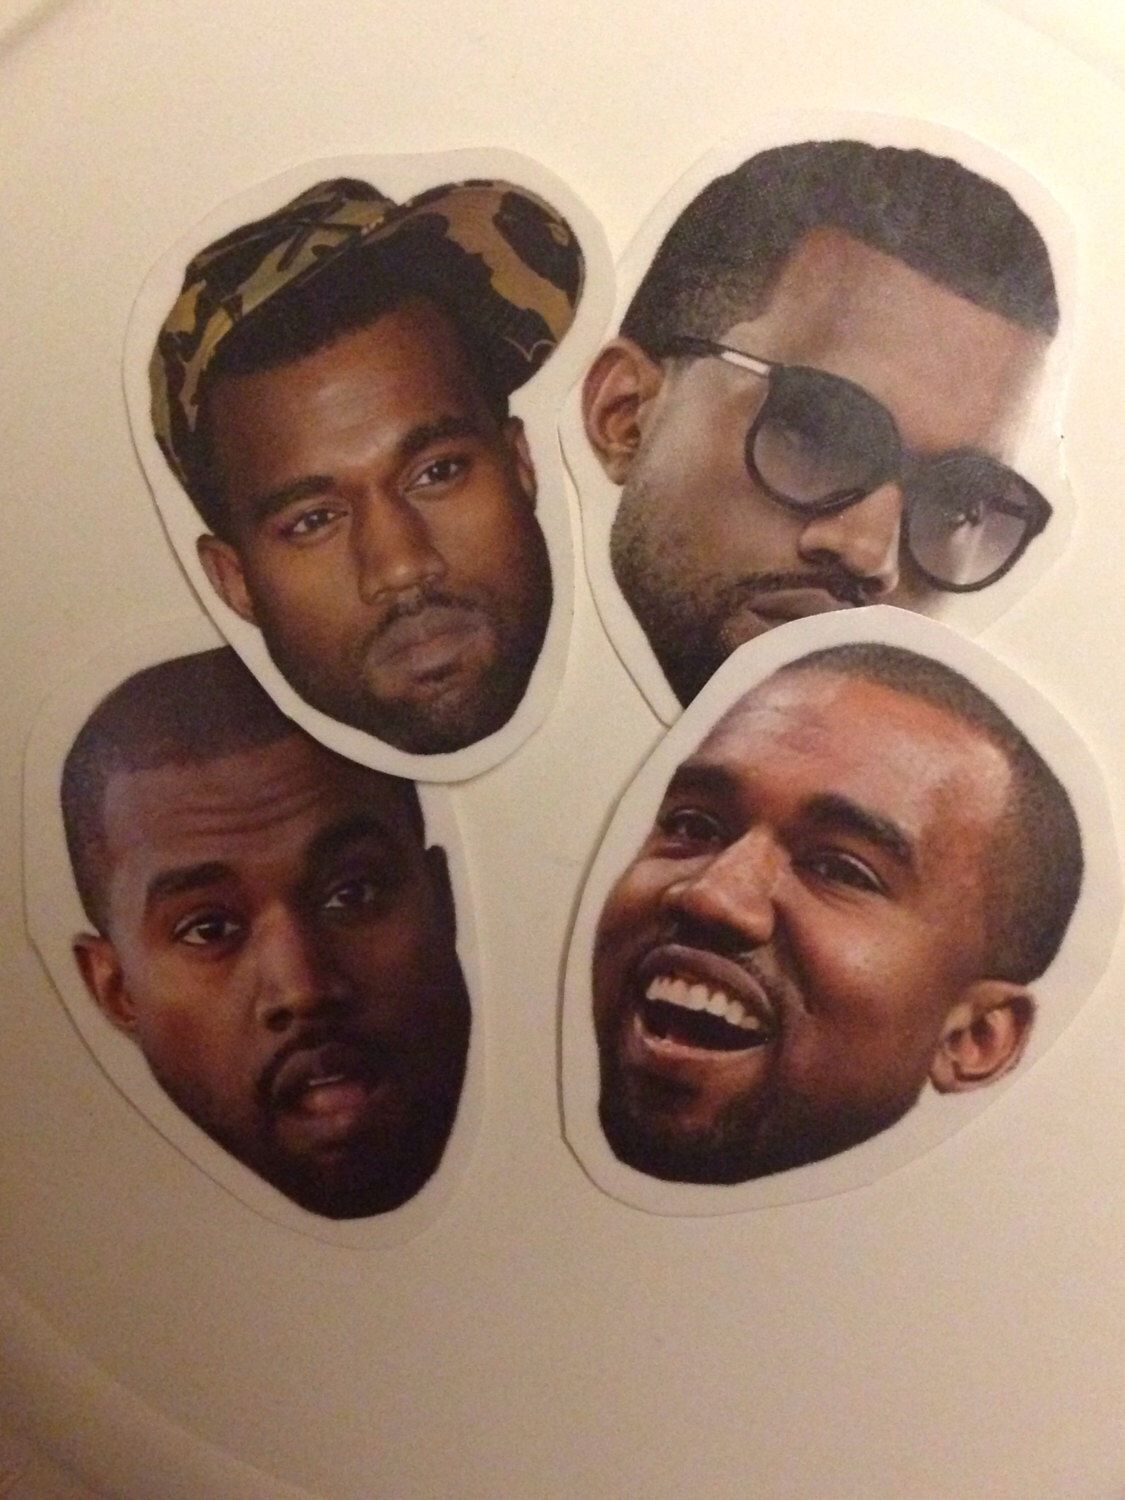 Kanye West Temporary Tattoos By Twolames On Etsy Https Listing 207913786